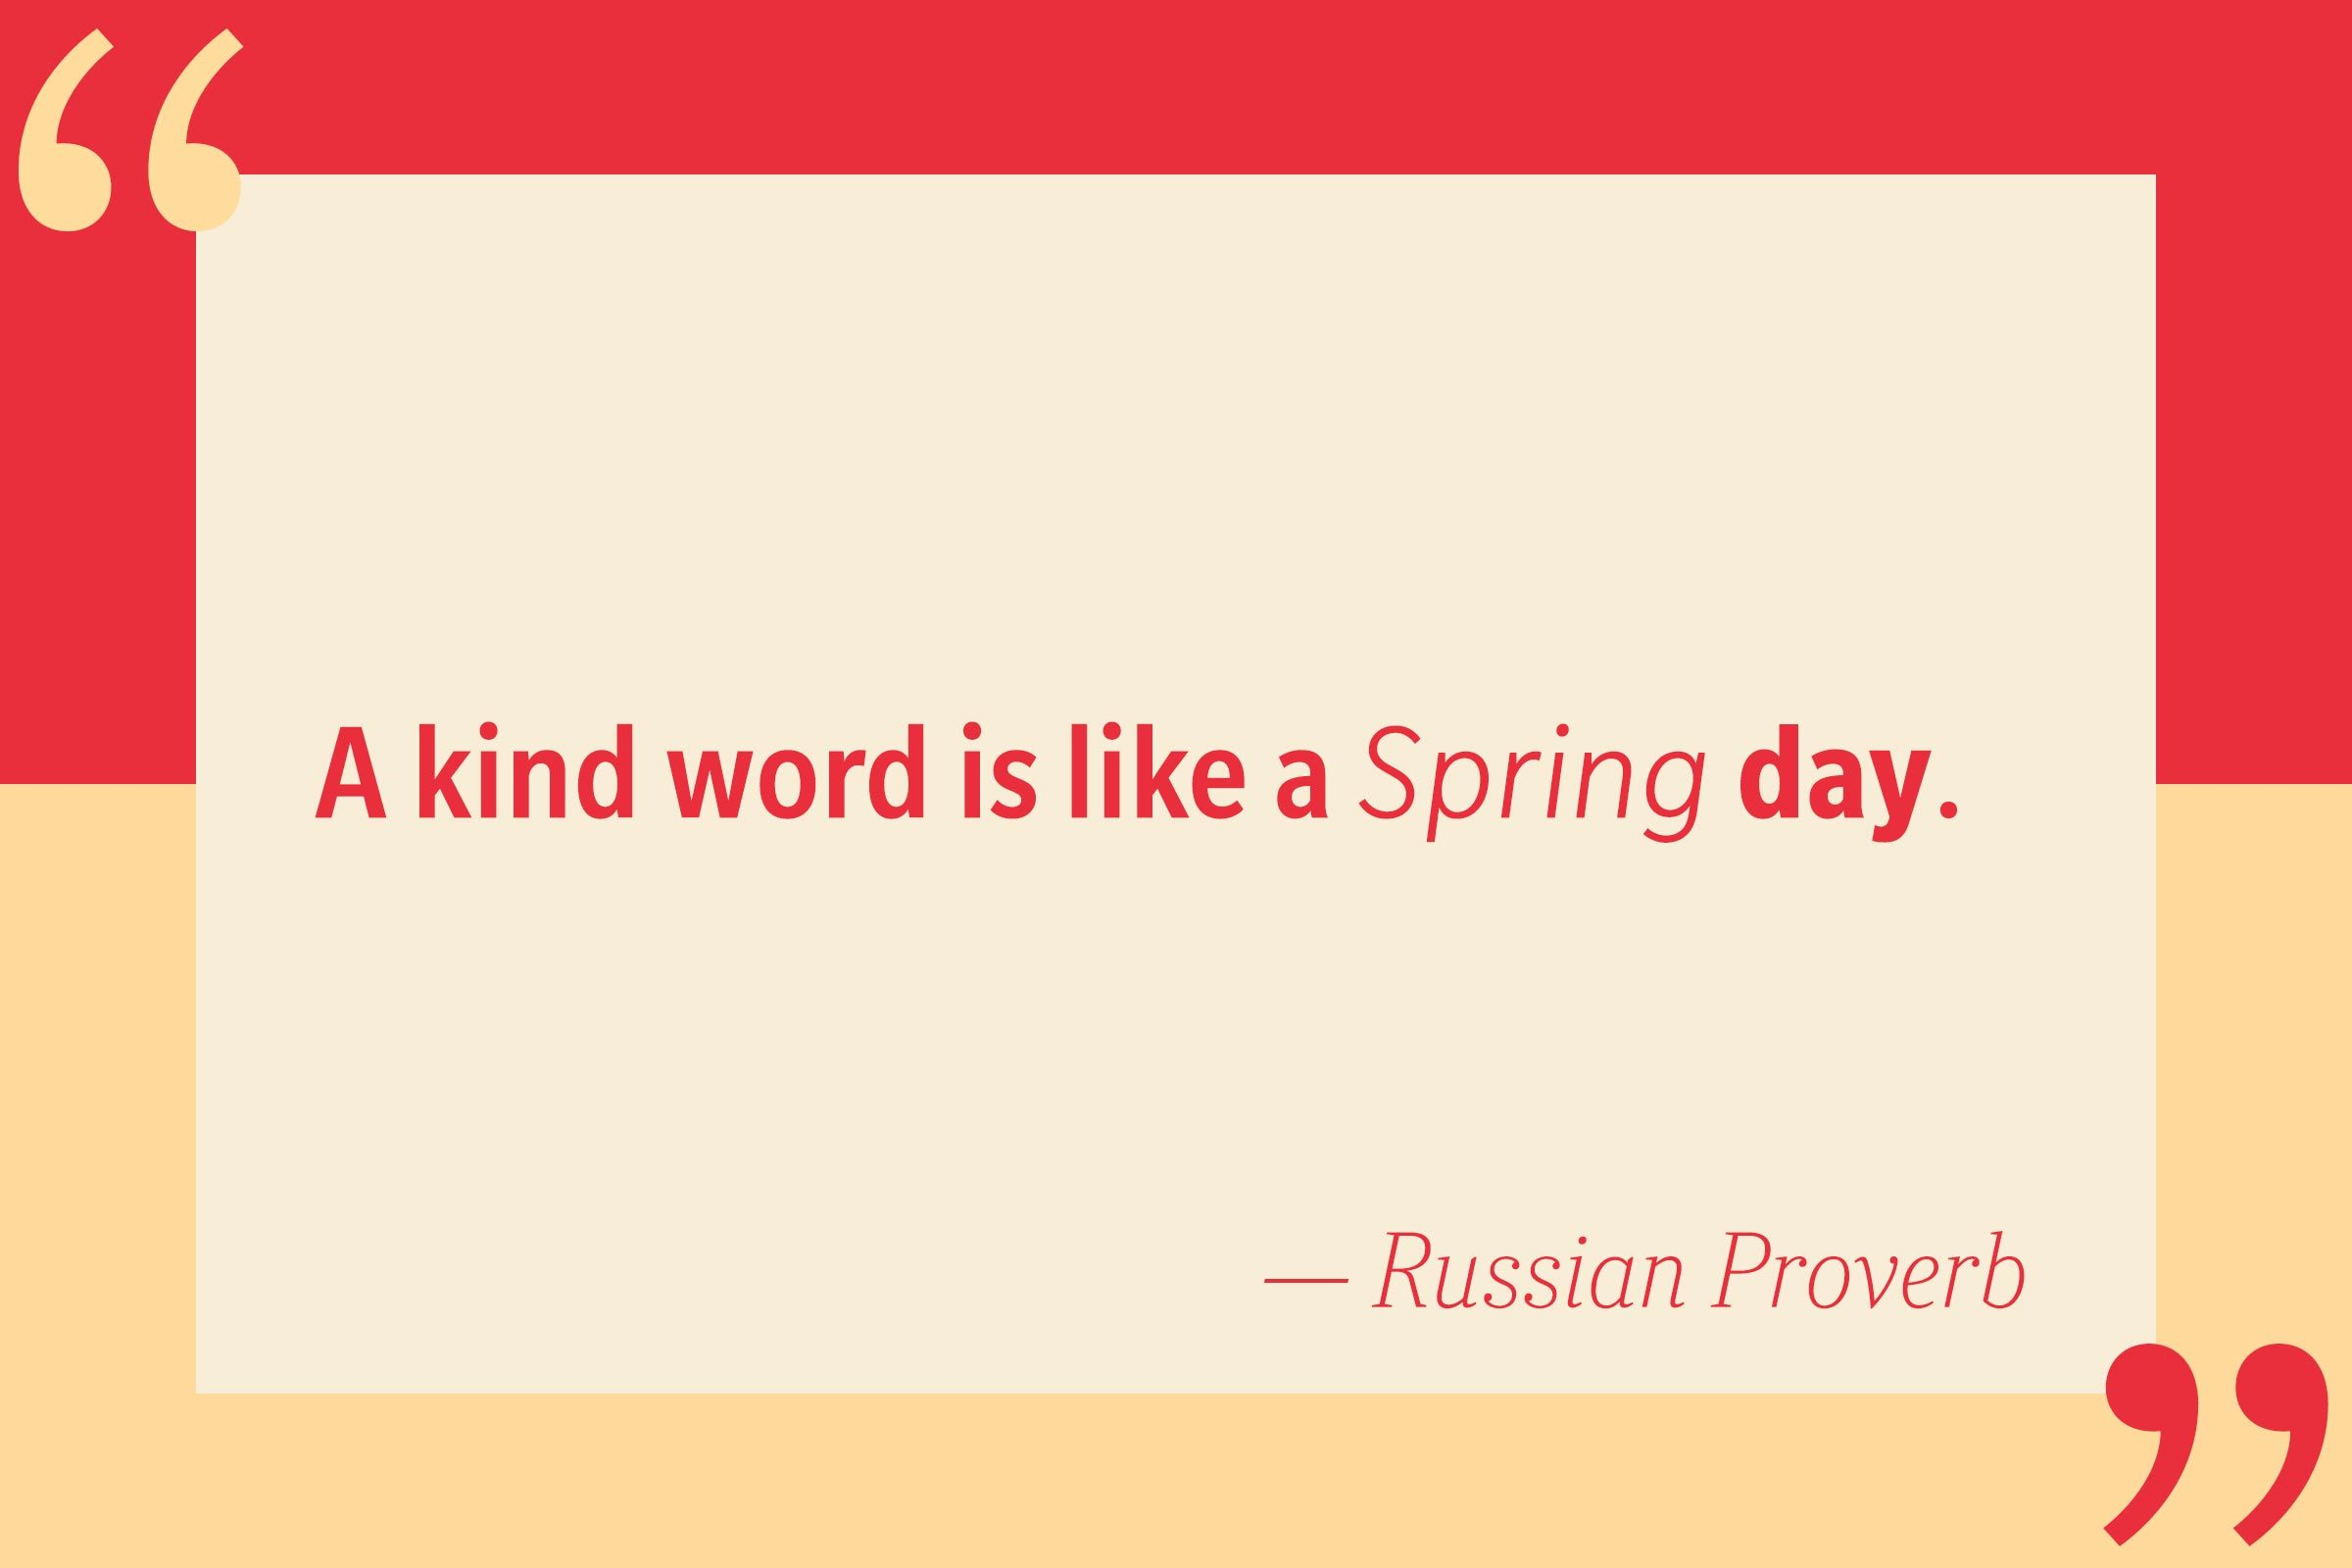 A kind word is like a Spring day. — Russian Proverb